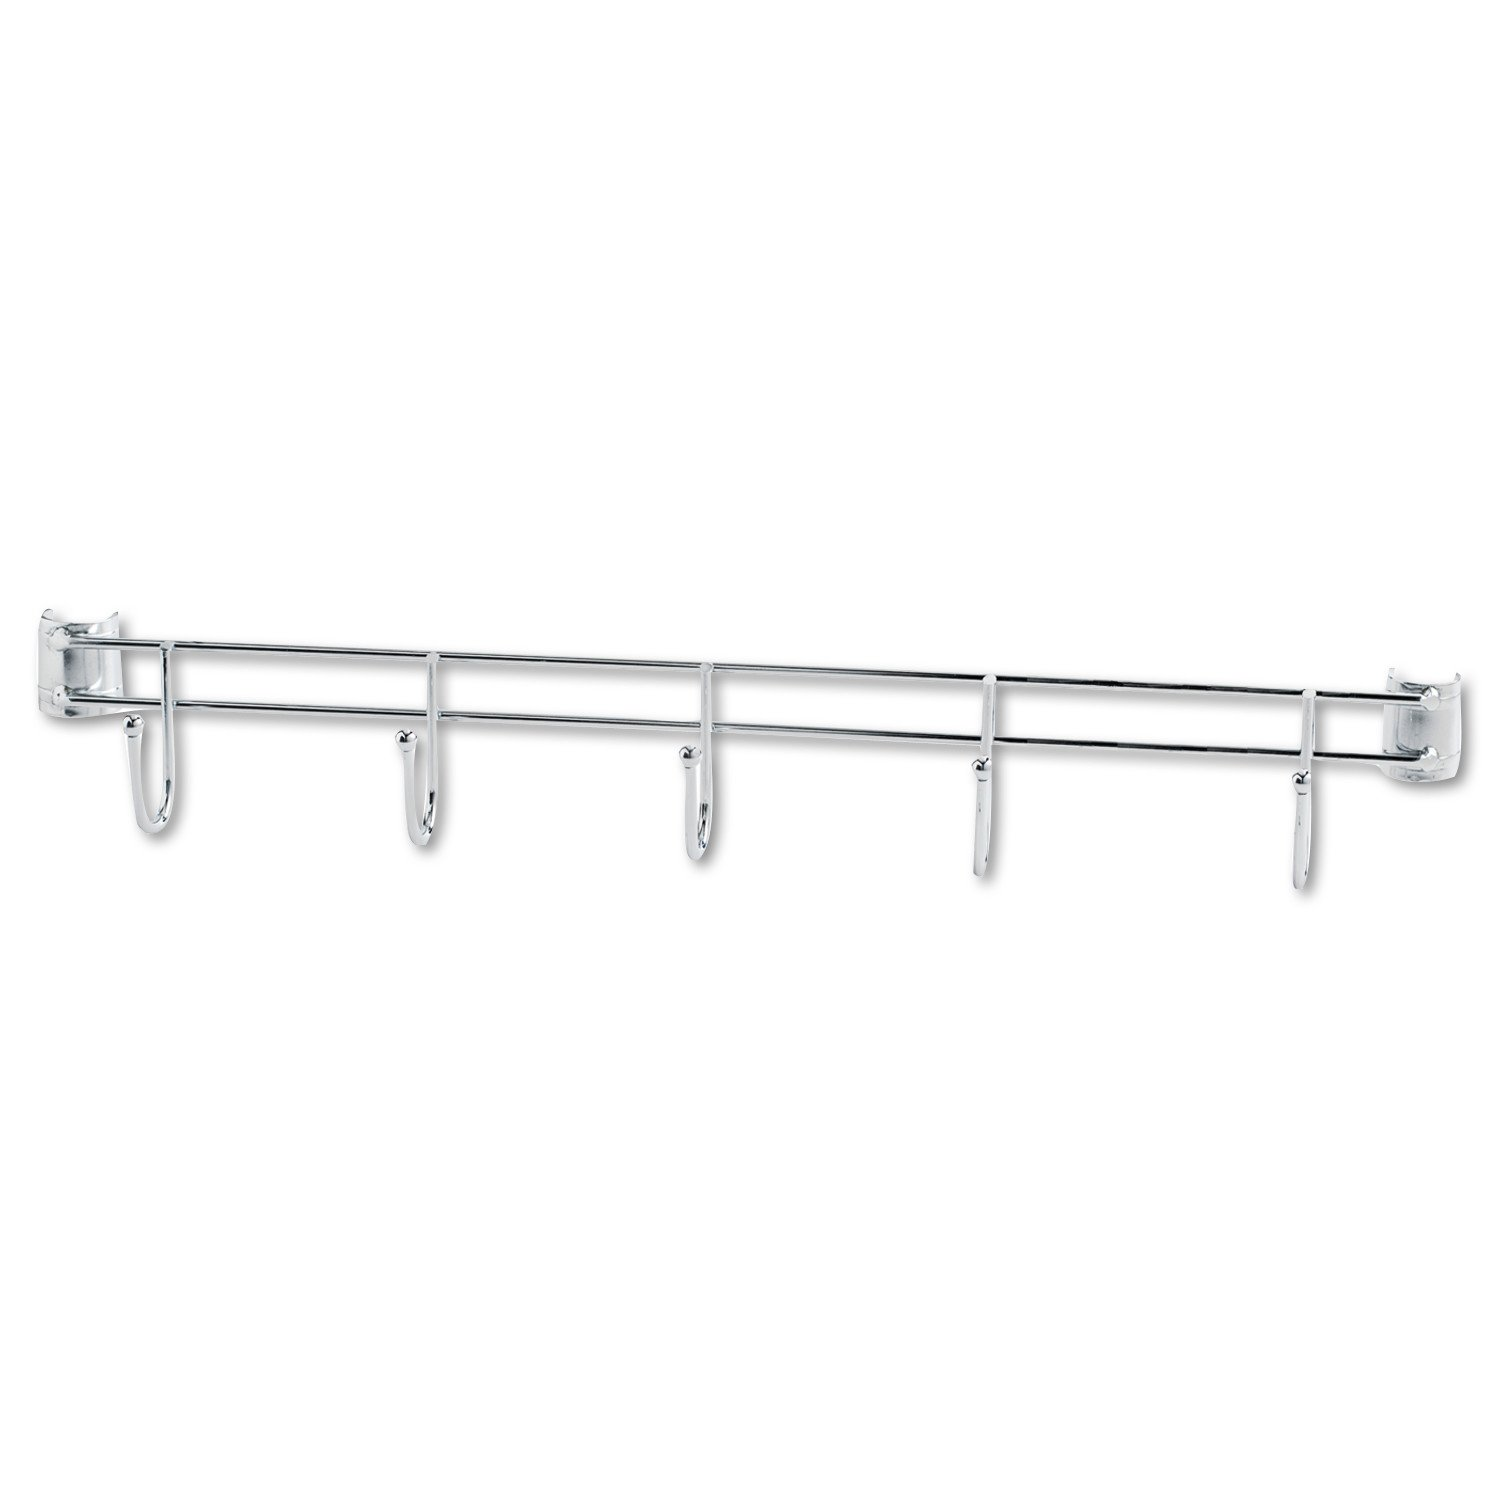 Alera ALESW59HB424SR Hook Bars For Wire Shelving, Five Hooks, 24'' Deep, Silver (Pack of 2 Bars)